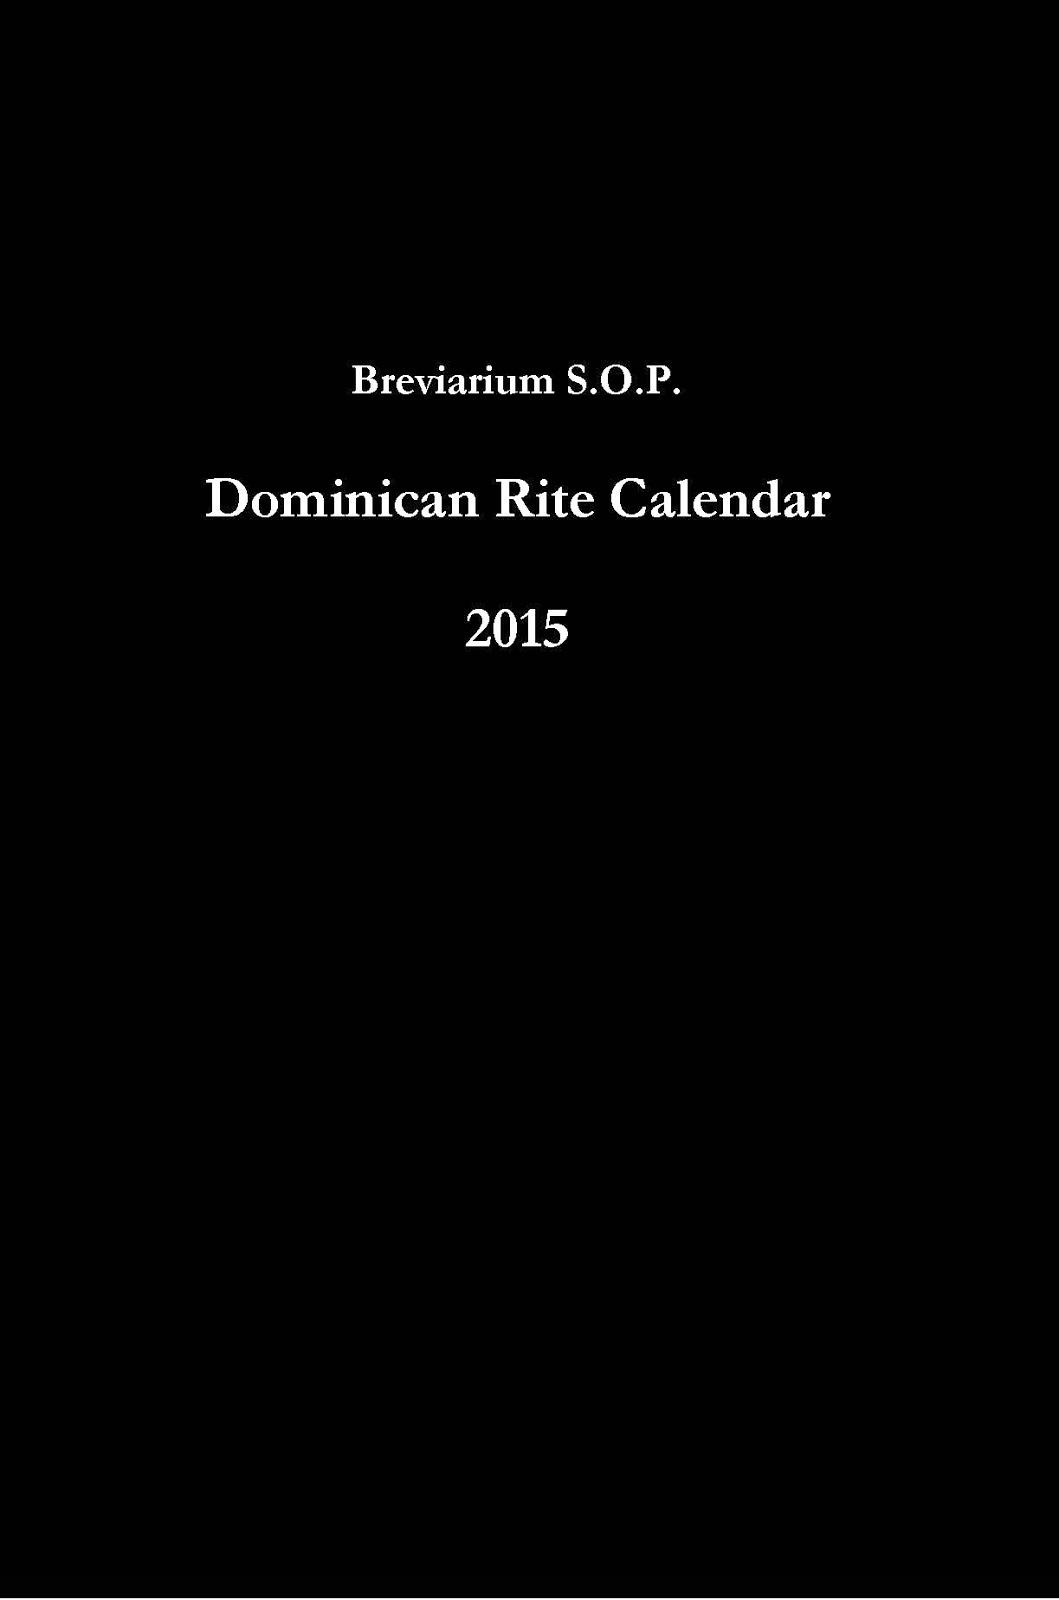 Breviarium S O P Coming Soon The Breviarium S O P Liturgical Calendar